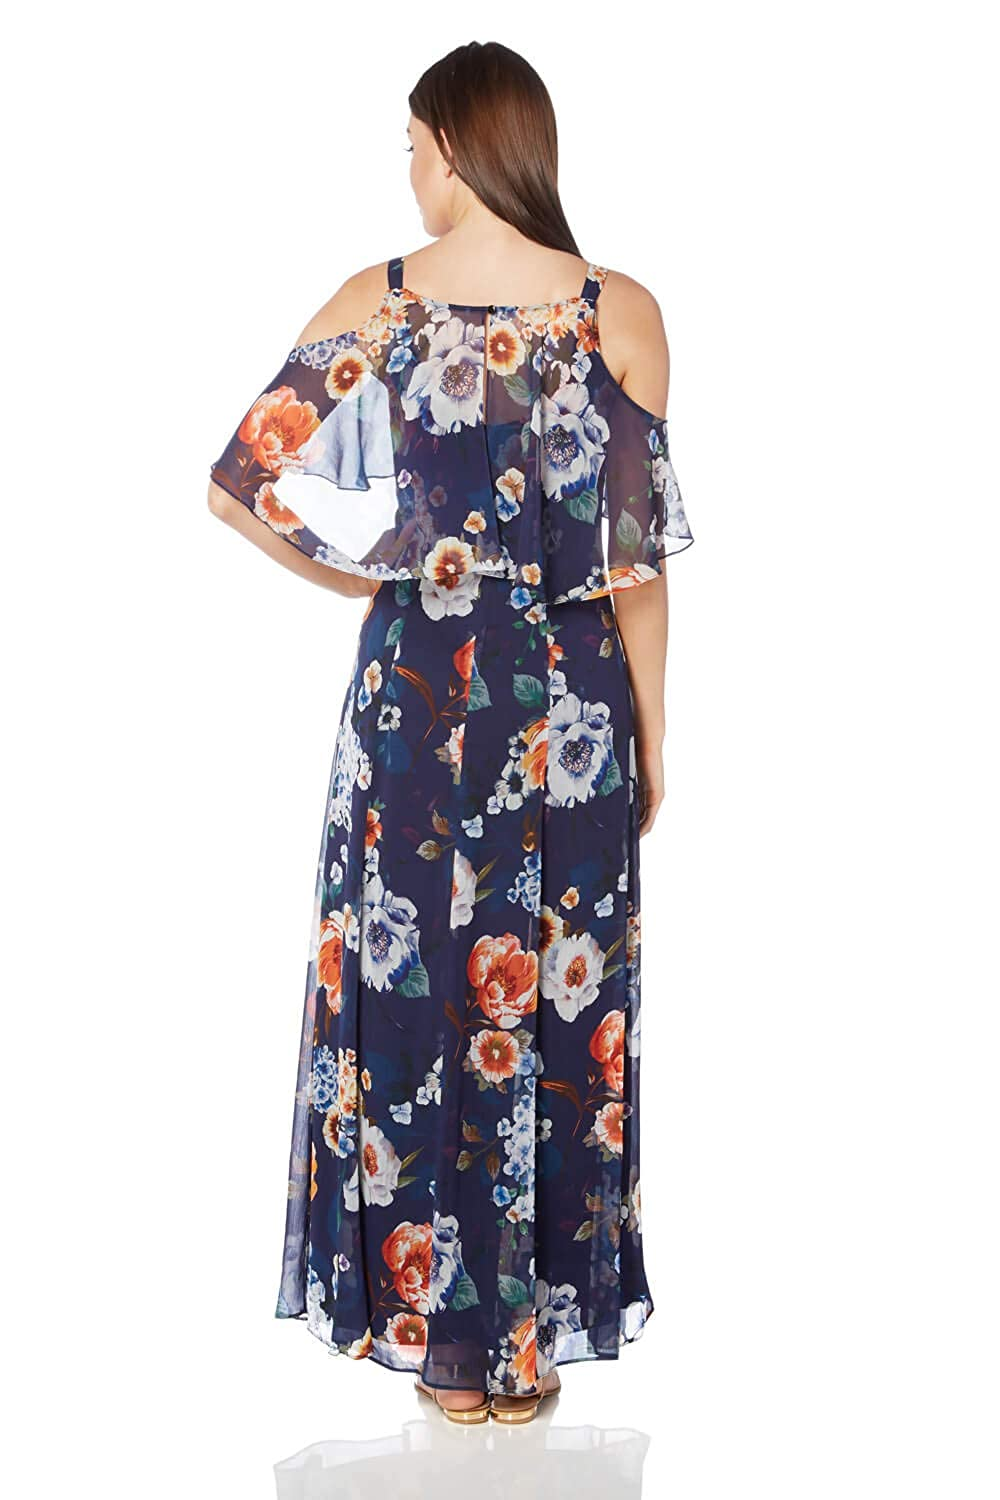 0af2093fbf99a Roman Originals Women Floral Cold Shoulder Chiffon Maxi Dress - Ladies  Chiffon Long Wedding Guest Holiday Cruise Occasion Summer Ascot Races Party  Outfits ...